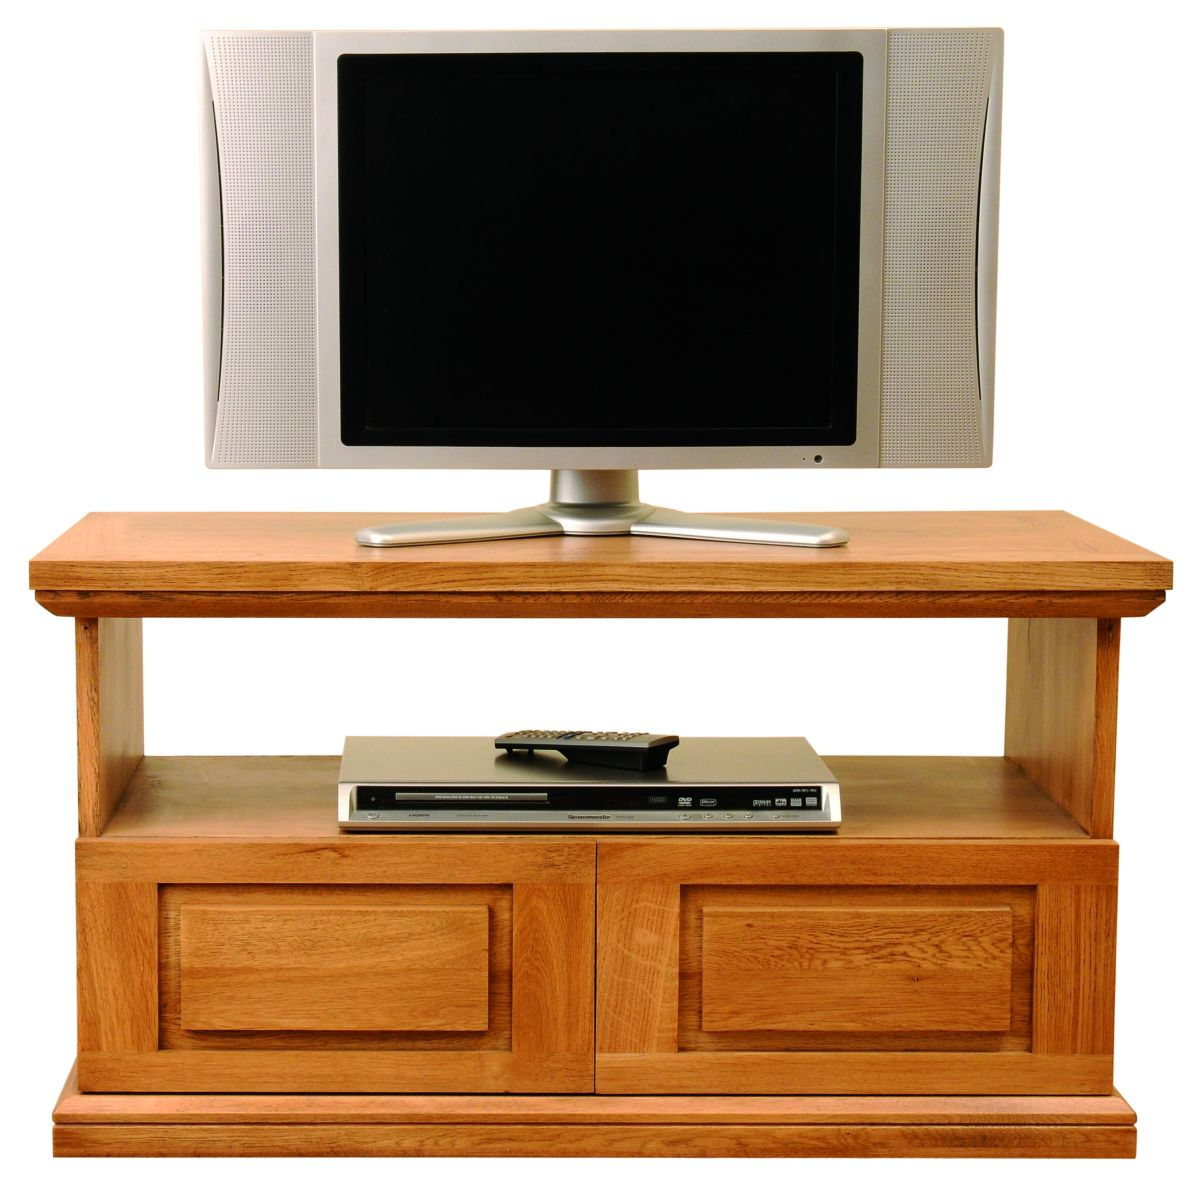 Solid Oak Entertainment Unit, 2 Drawers and 1 Open Area